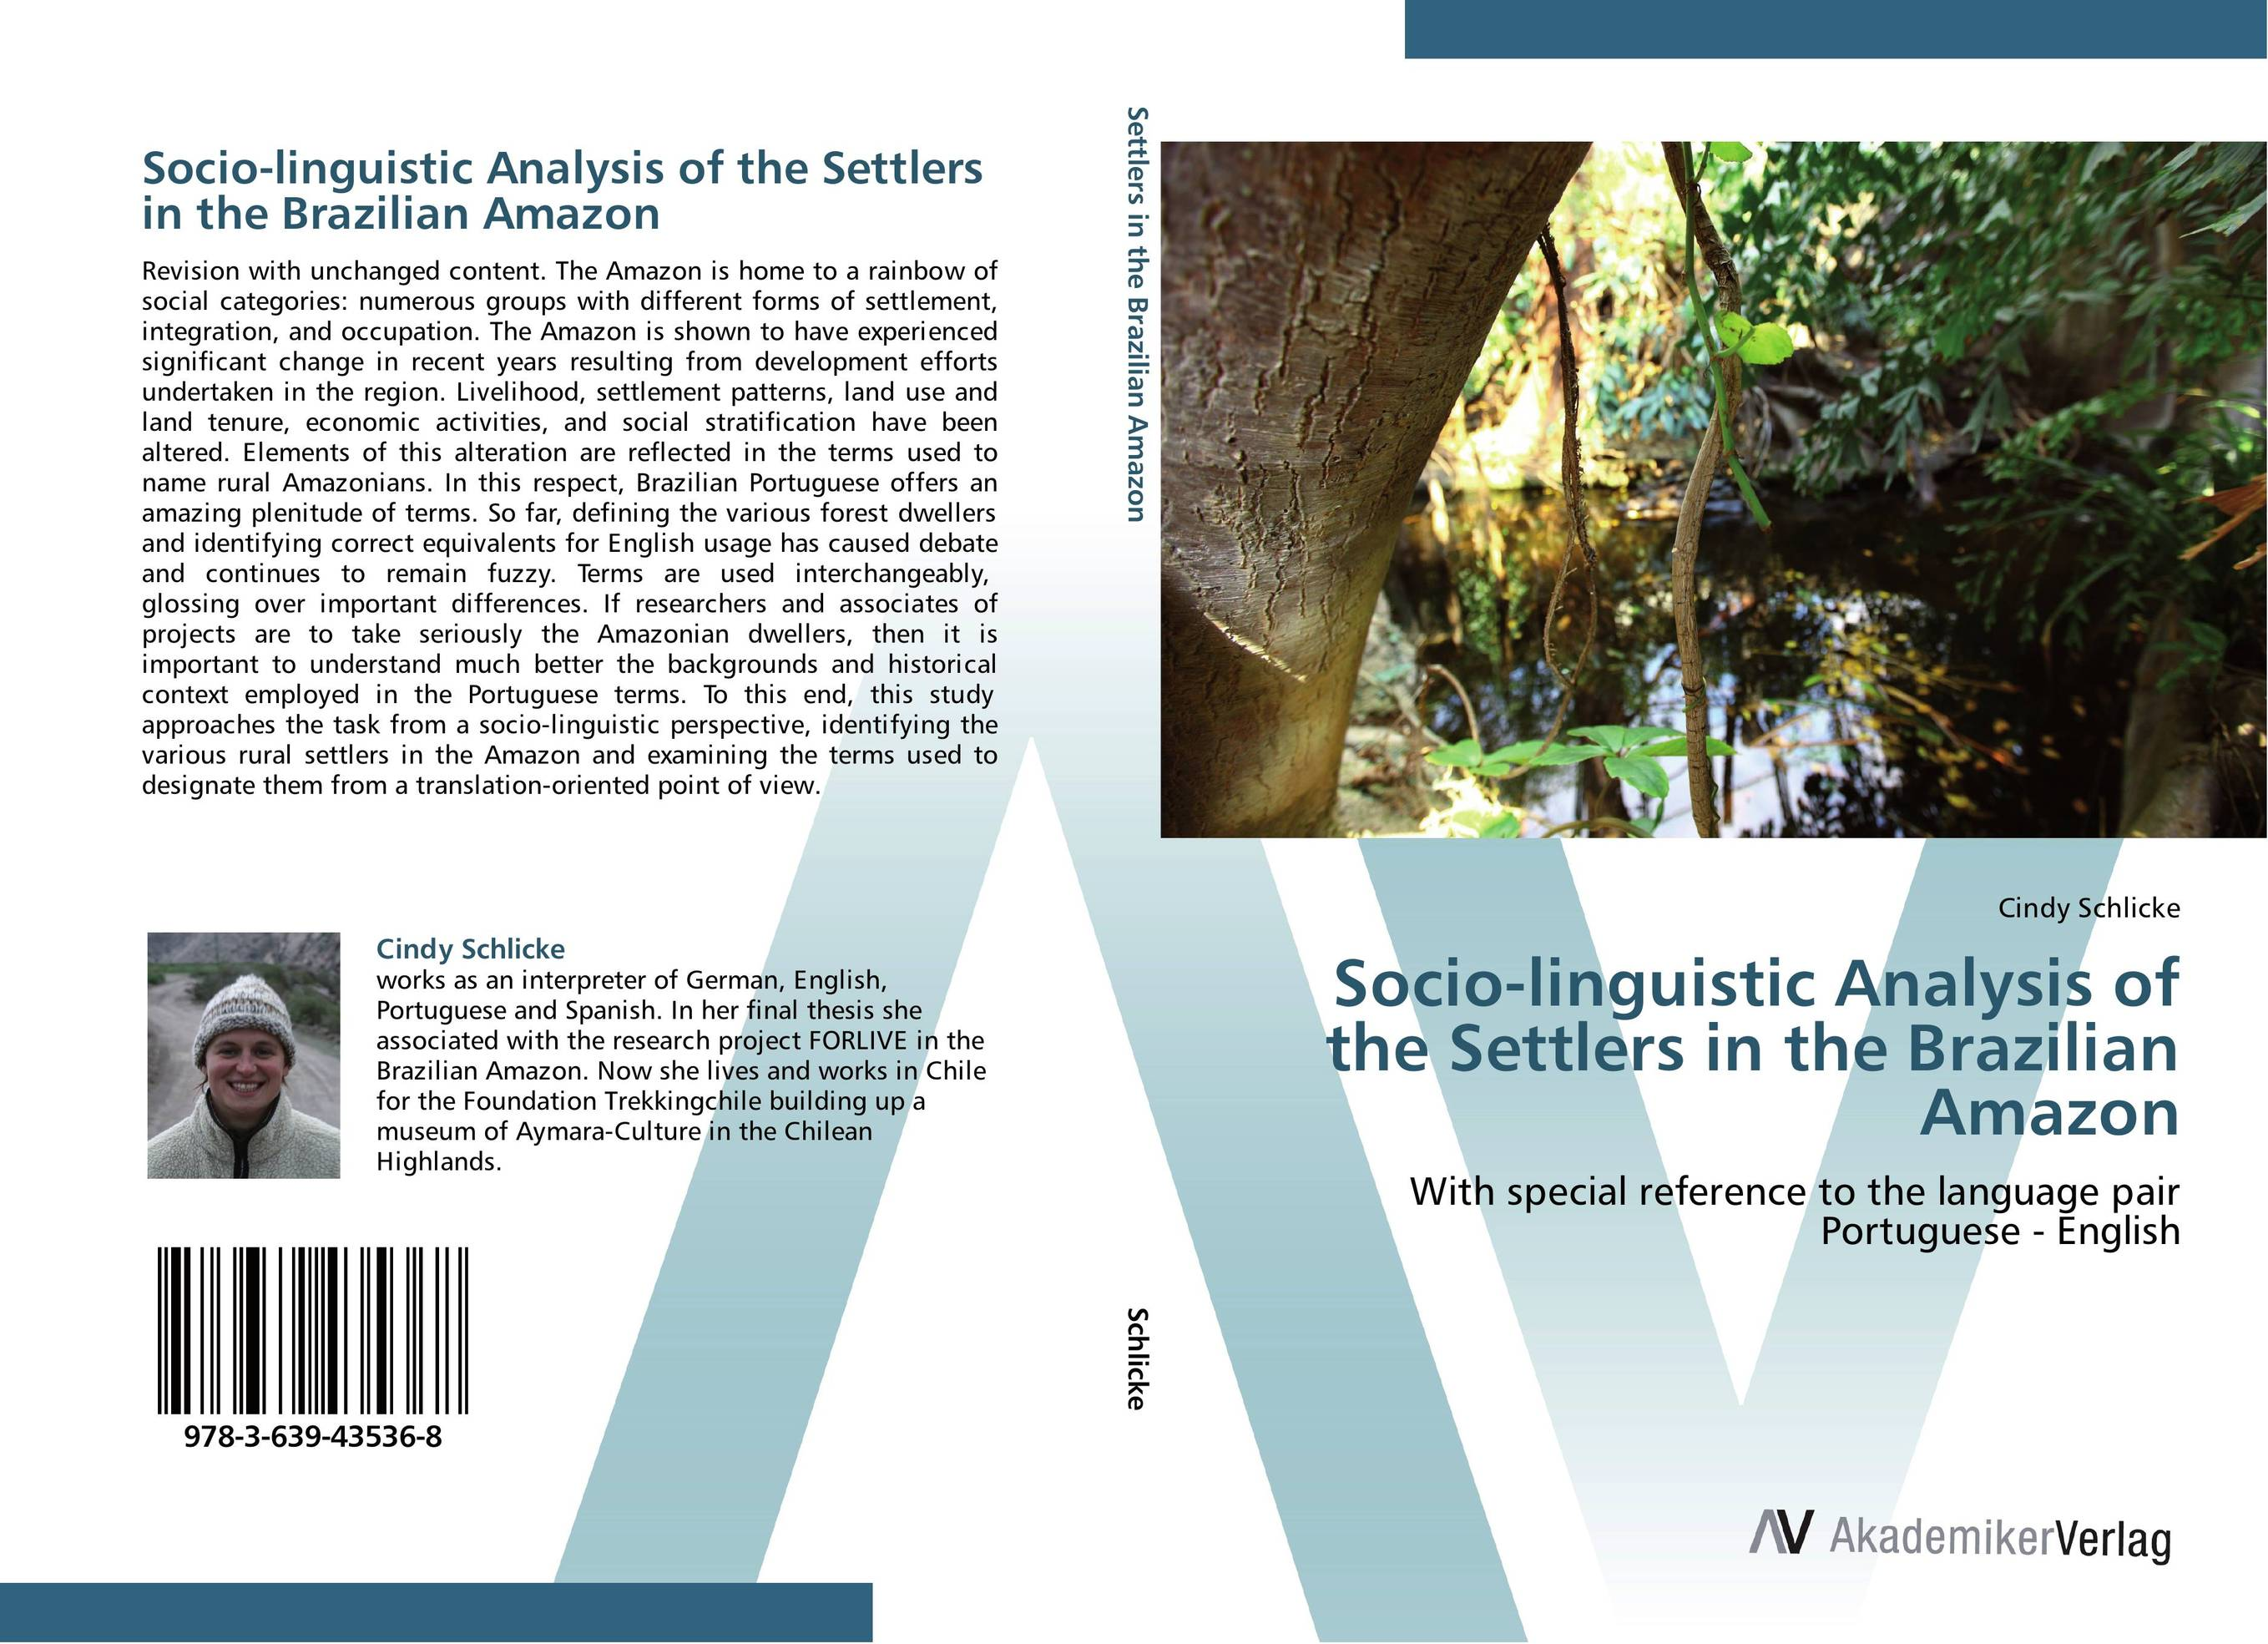 Socio-linguistic Analysis of the Settlers in the Brazilian Amazon stem bromelain in silico analysis for stability and modification